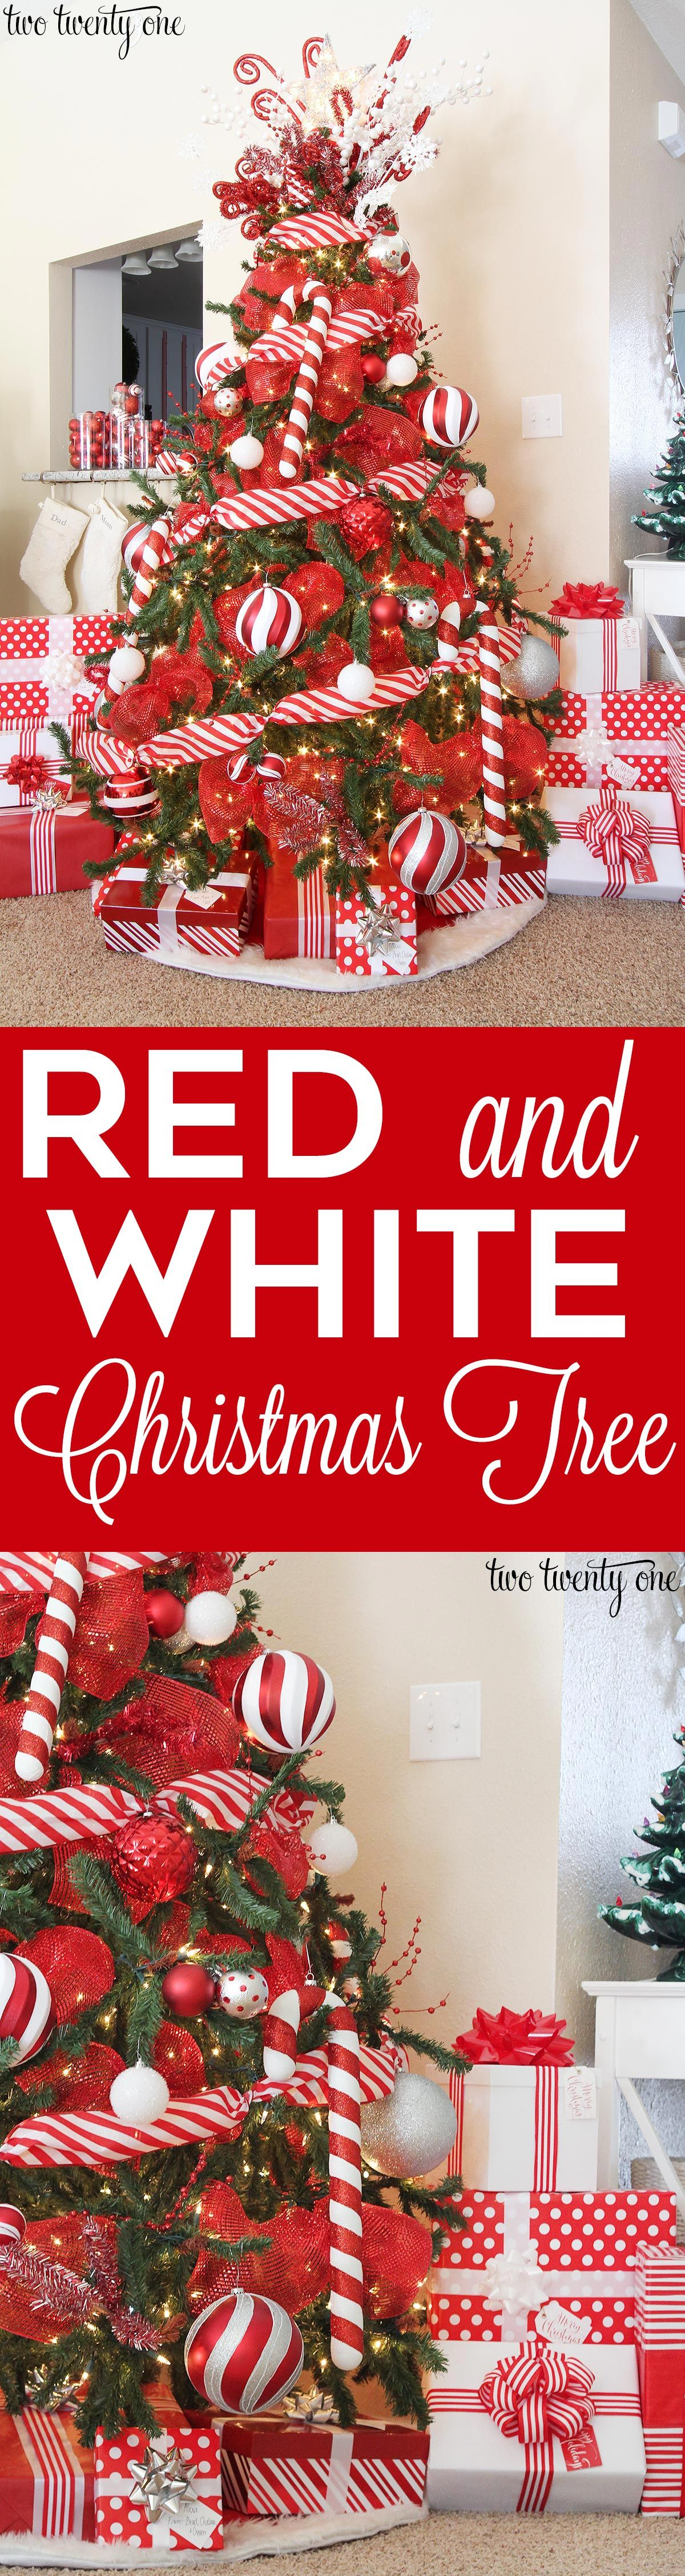 beautifully decorated red and white christmas tree with candy cane accents - Candy Cane Christmas Tree Decorations